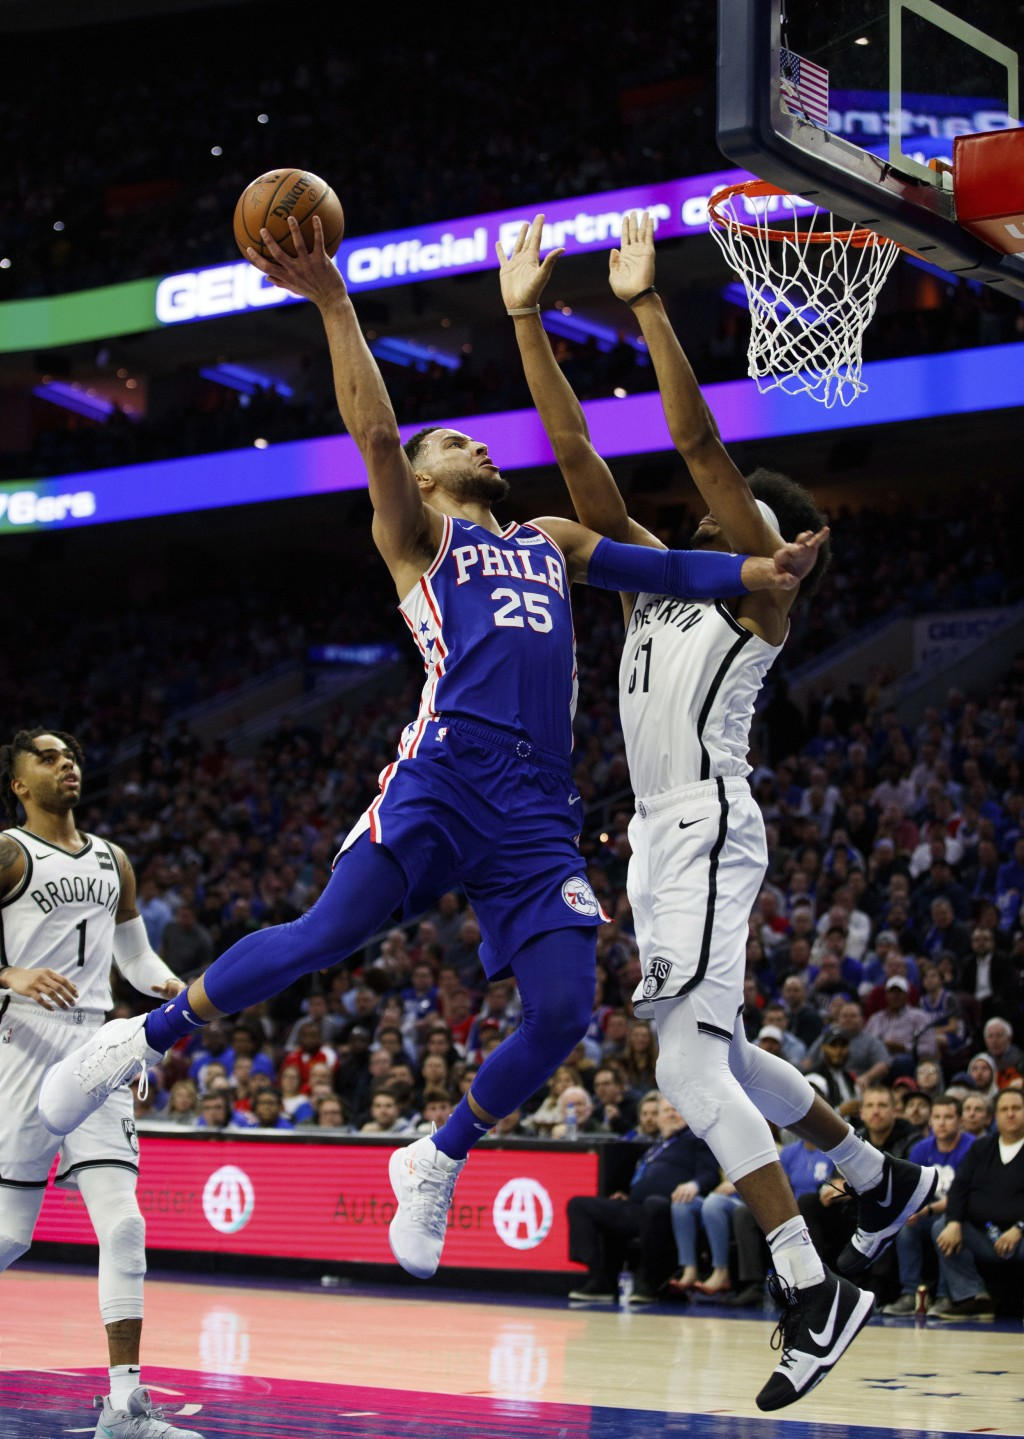 Philadelphia 76ers' Ben Simmons, left, of Australia, goes up for the shot against Brooklyn Nets' Jarrett Allen, right, during the first half in Game 2